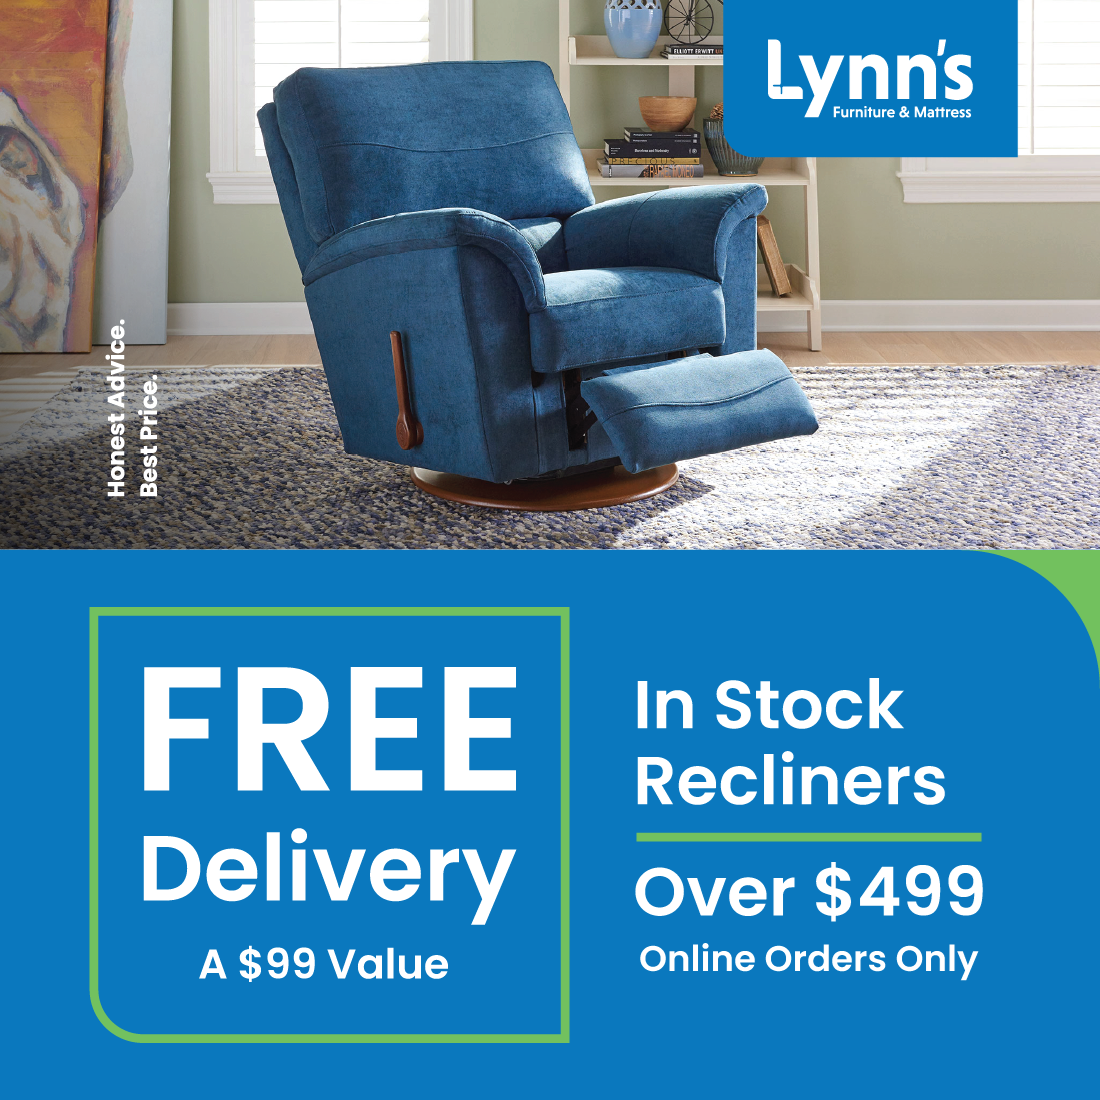 Free Delivery of In Stock Recliners Over $499. (Online orders only.)